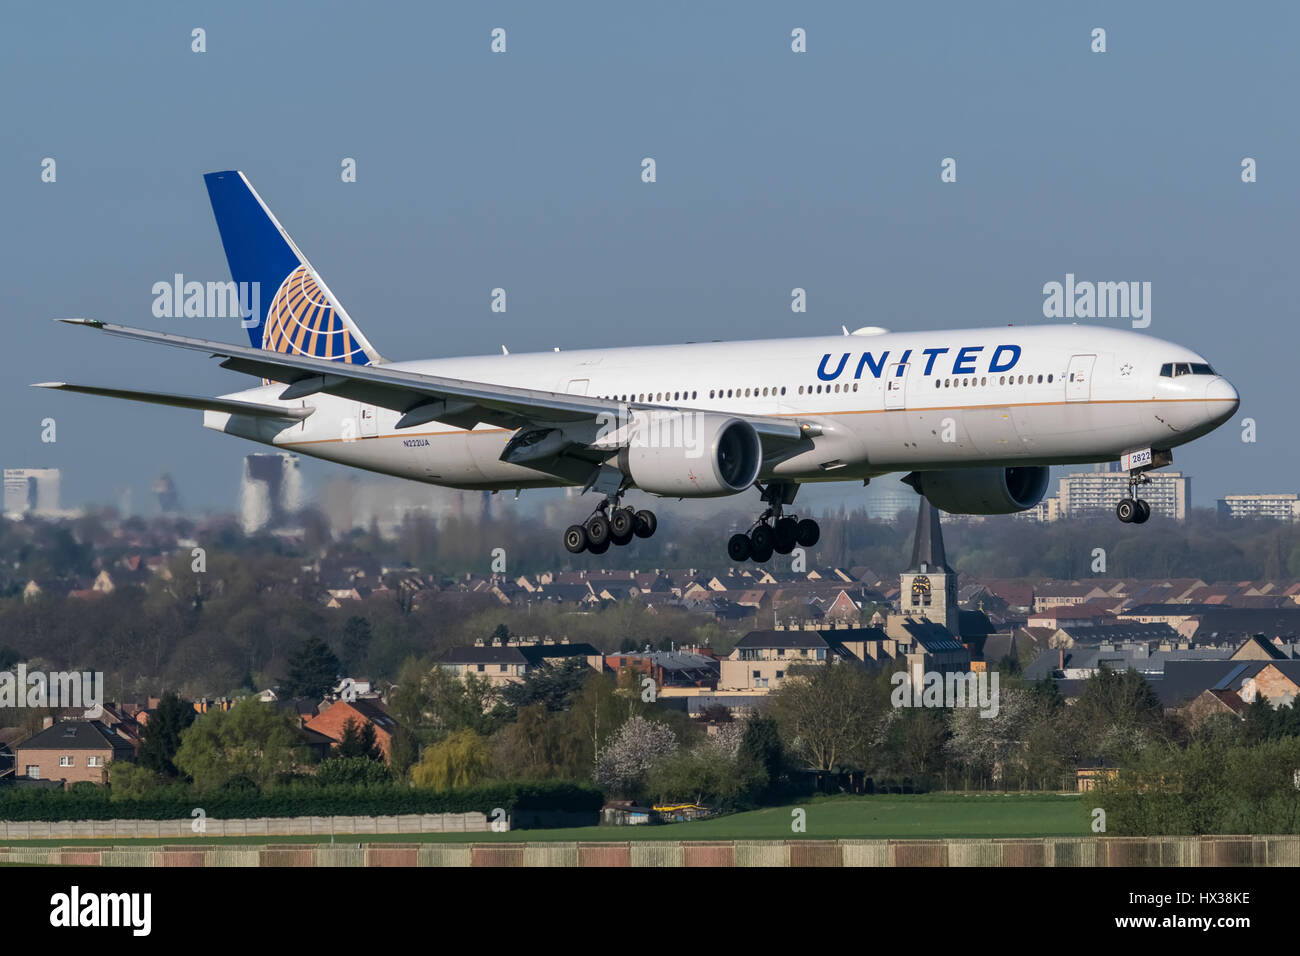 United Airlines Boeing 772 landing on runway 01 at Brussels Airport.